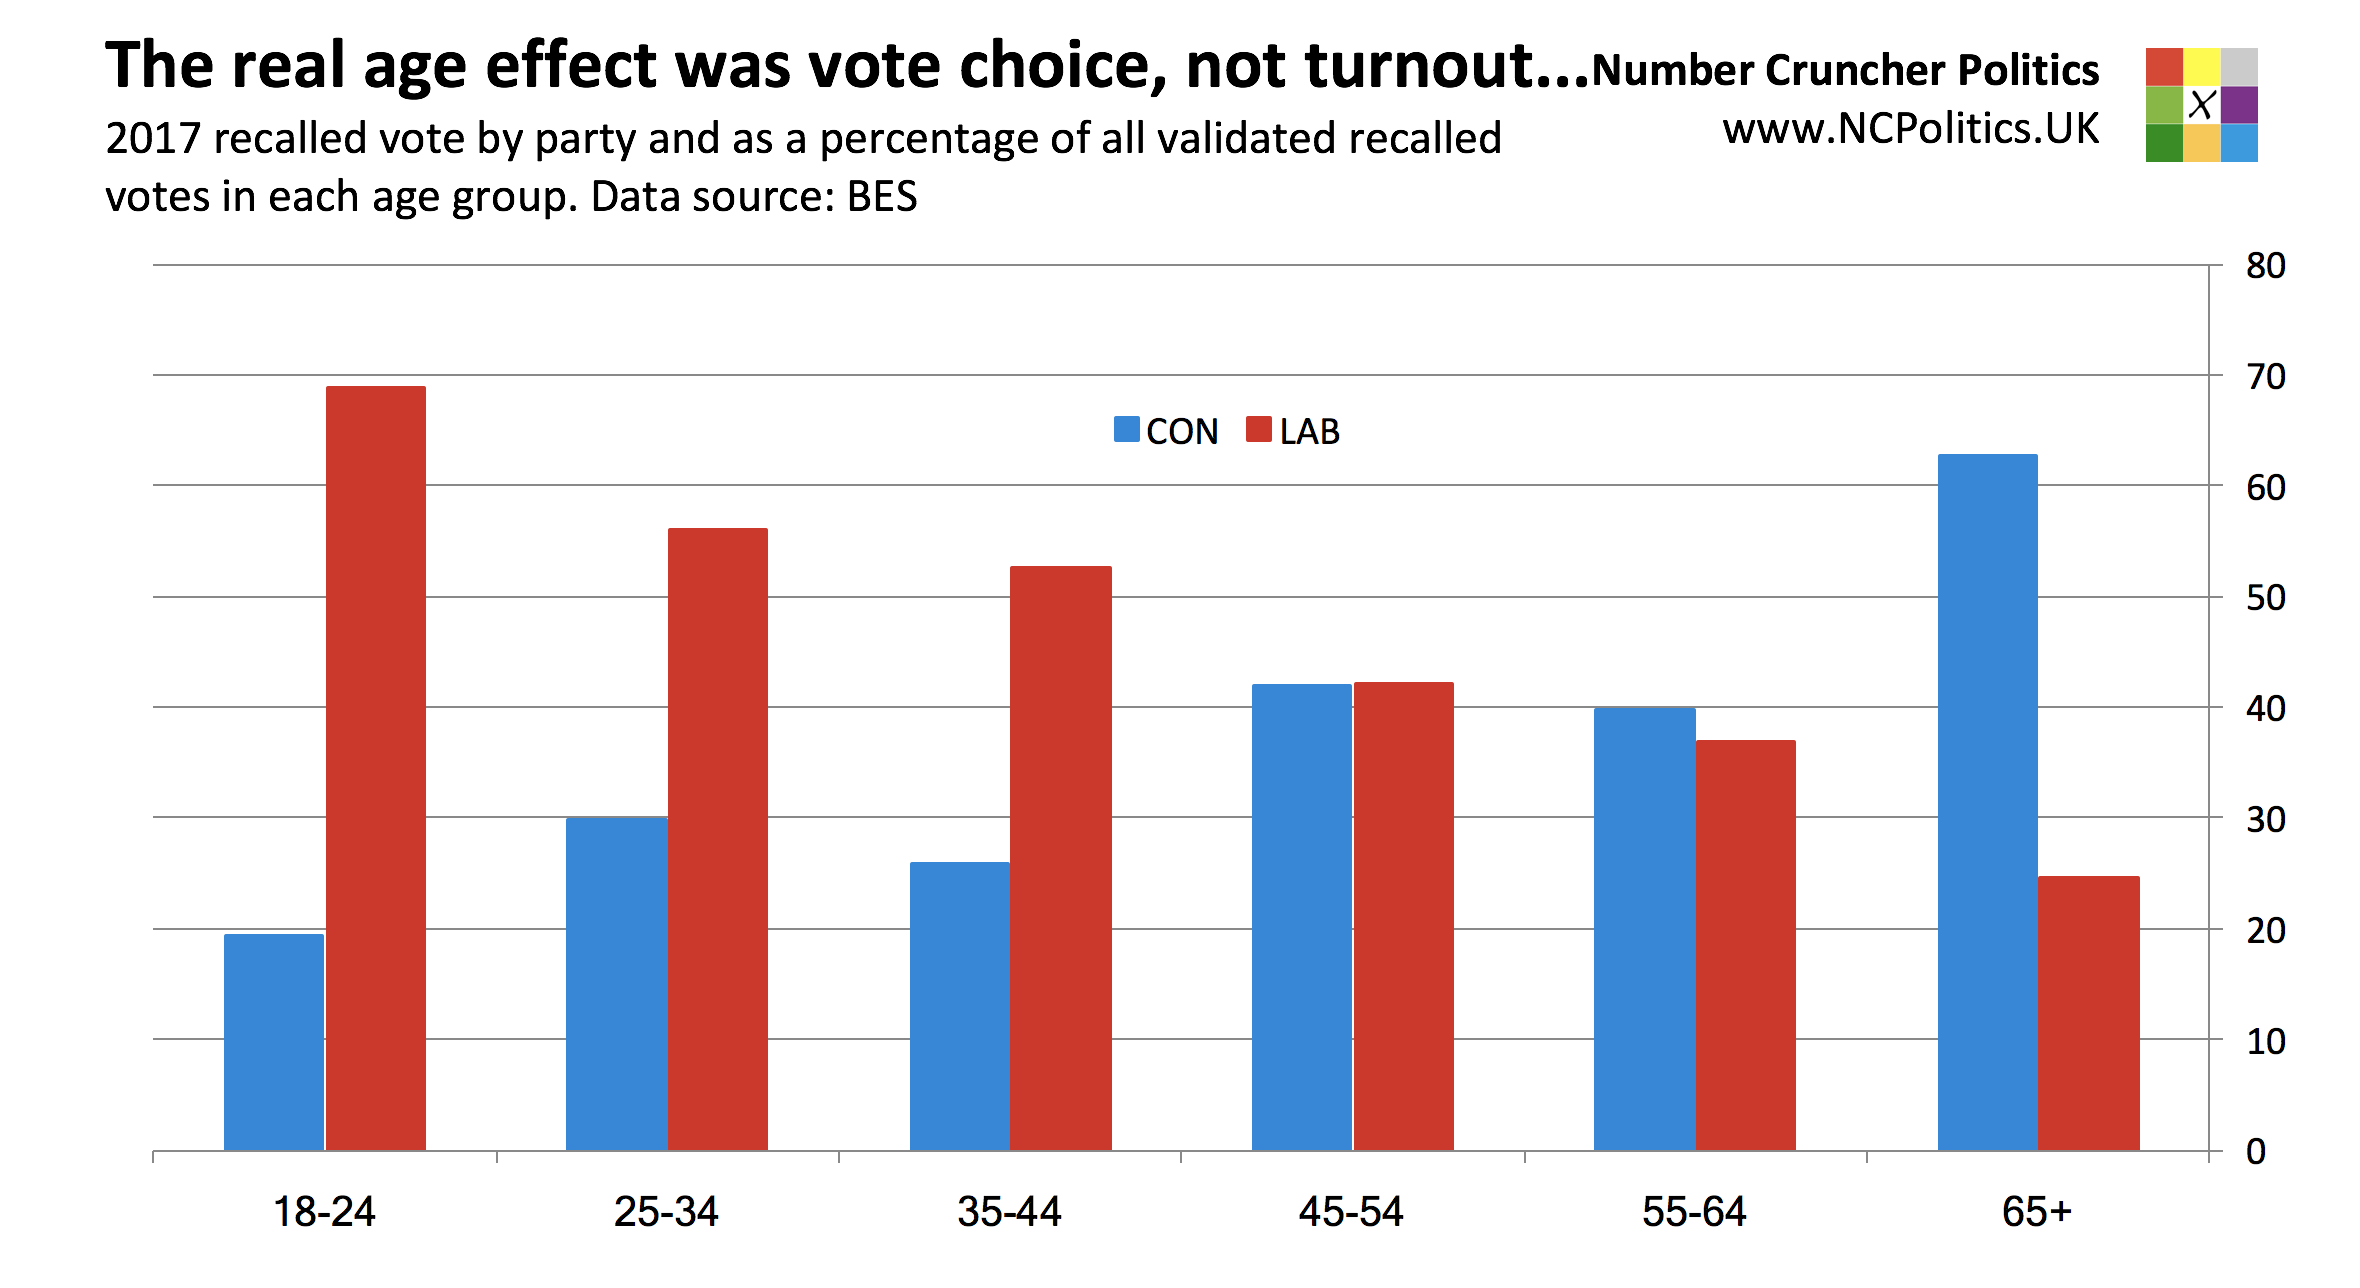 British Election Study 2017: The real age effect was vote choice, not turnout...